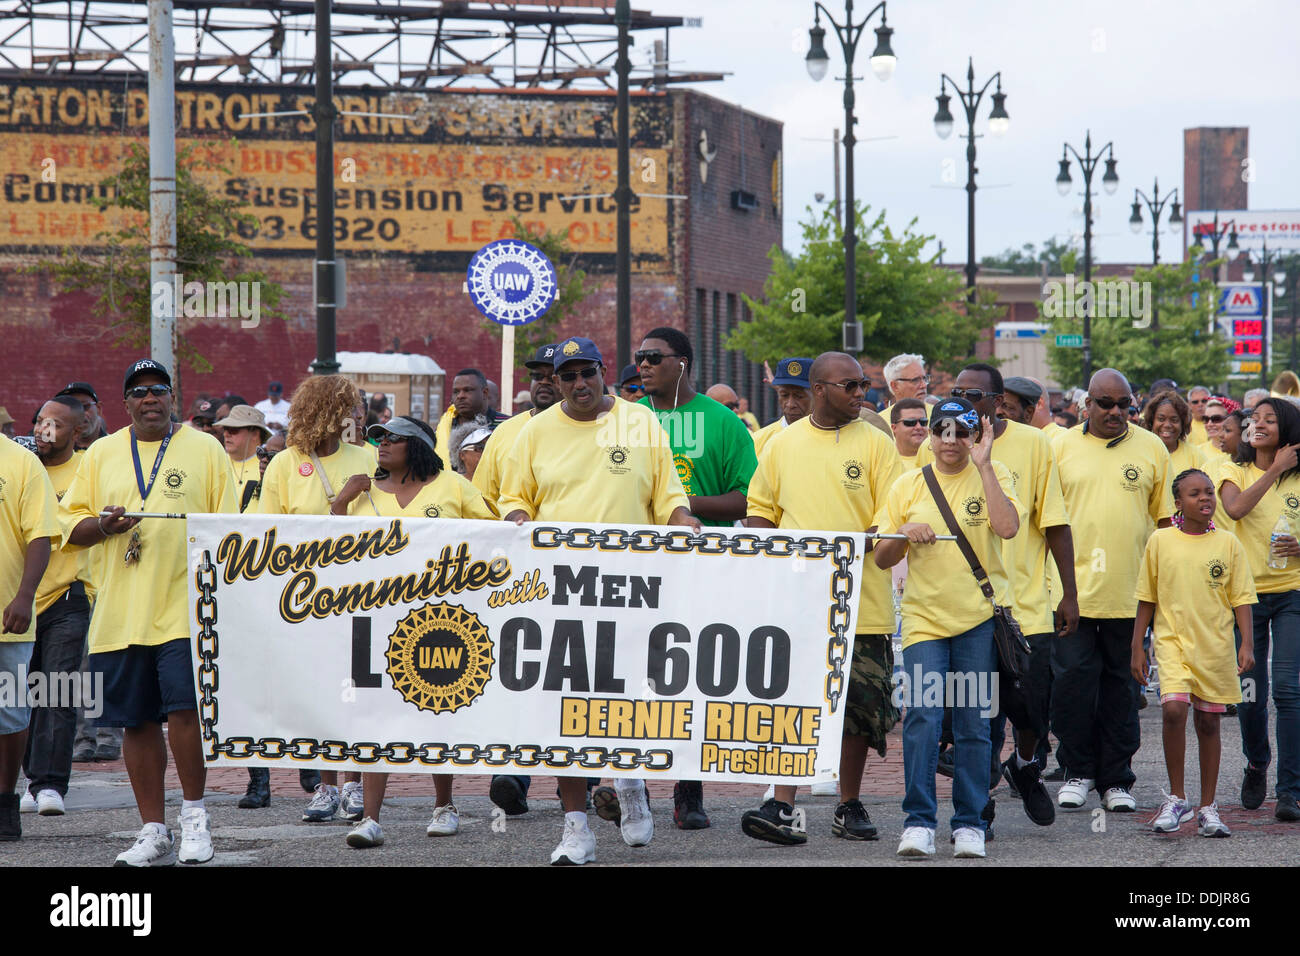 Detroit, Michigan - Members of the United Auto Workers Local 600 Women's Committee, which includes men, at the Labor Day parade. - Stock Image